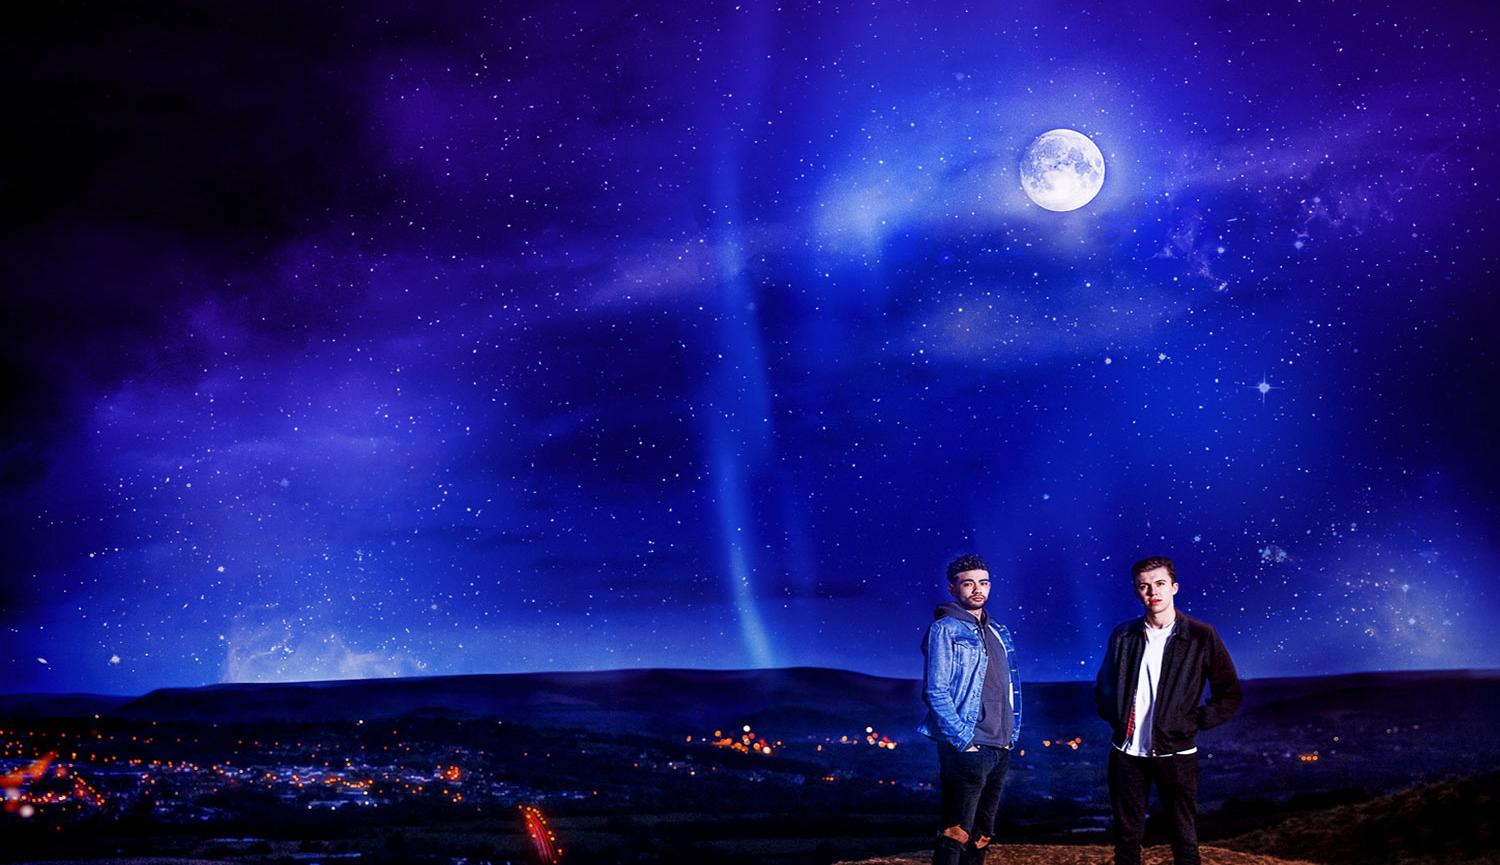 Two men on hilliside at night with moon overhead